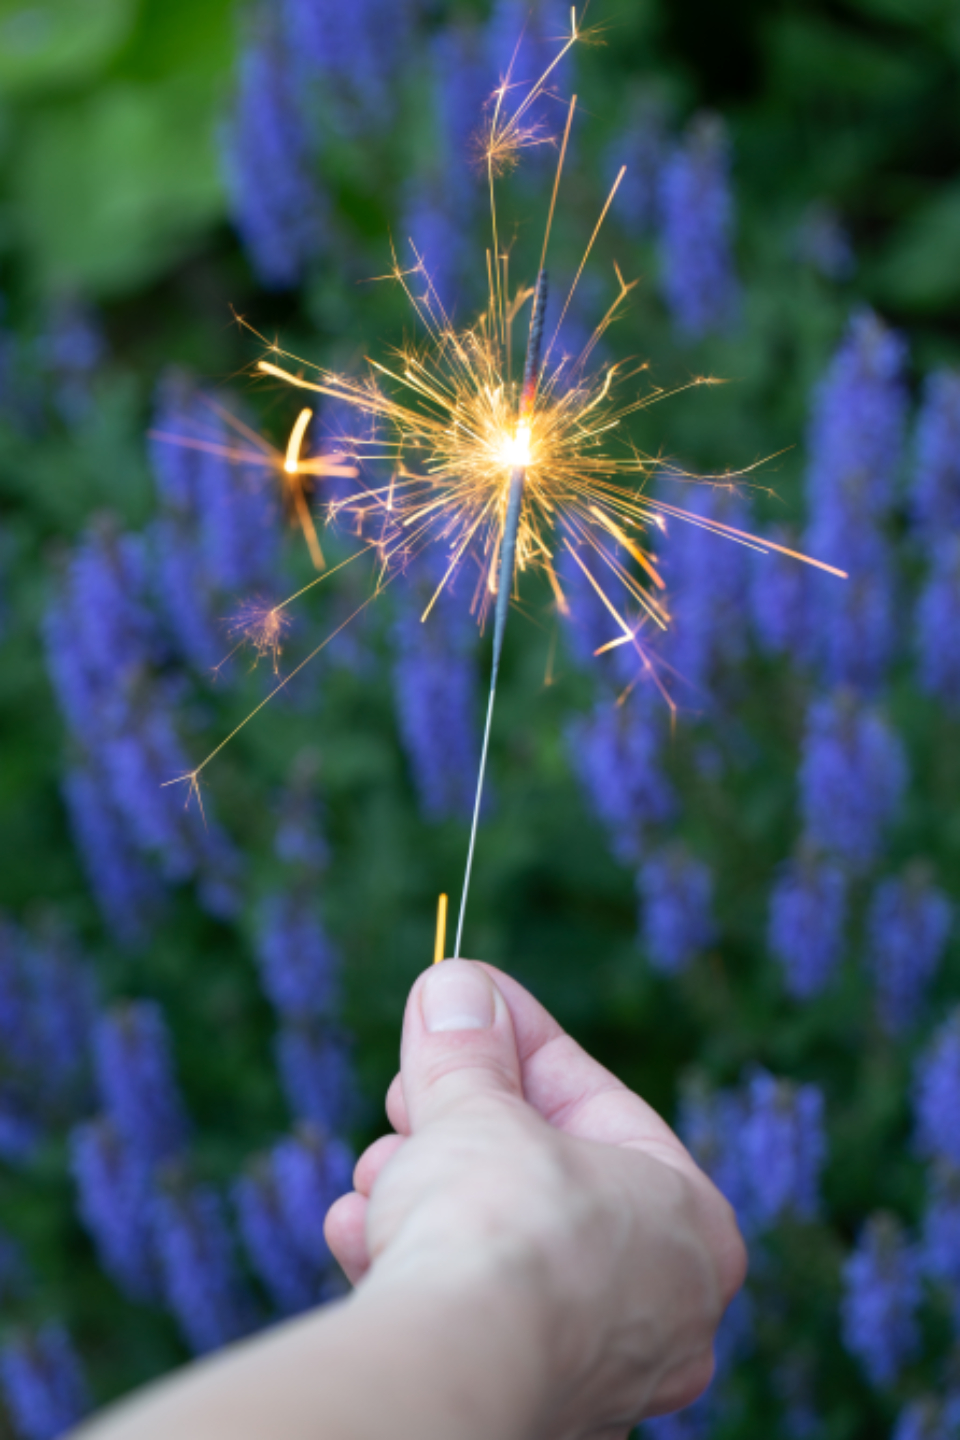 sparklers fireworks holiday celebration flowers bokeh outdoors summer fun hand holding sparks festive glittering mobile wallpaper glowing evening entertainment